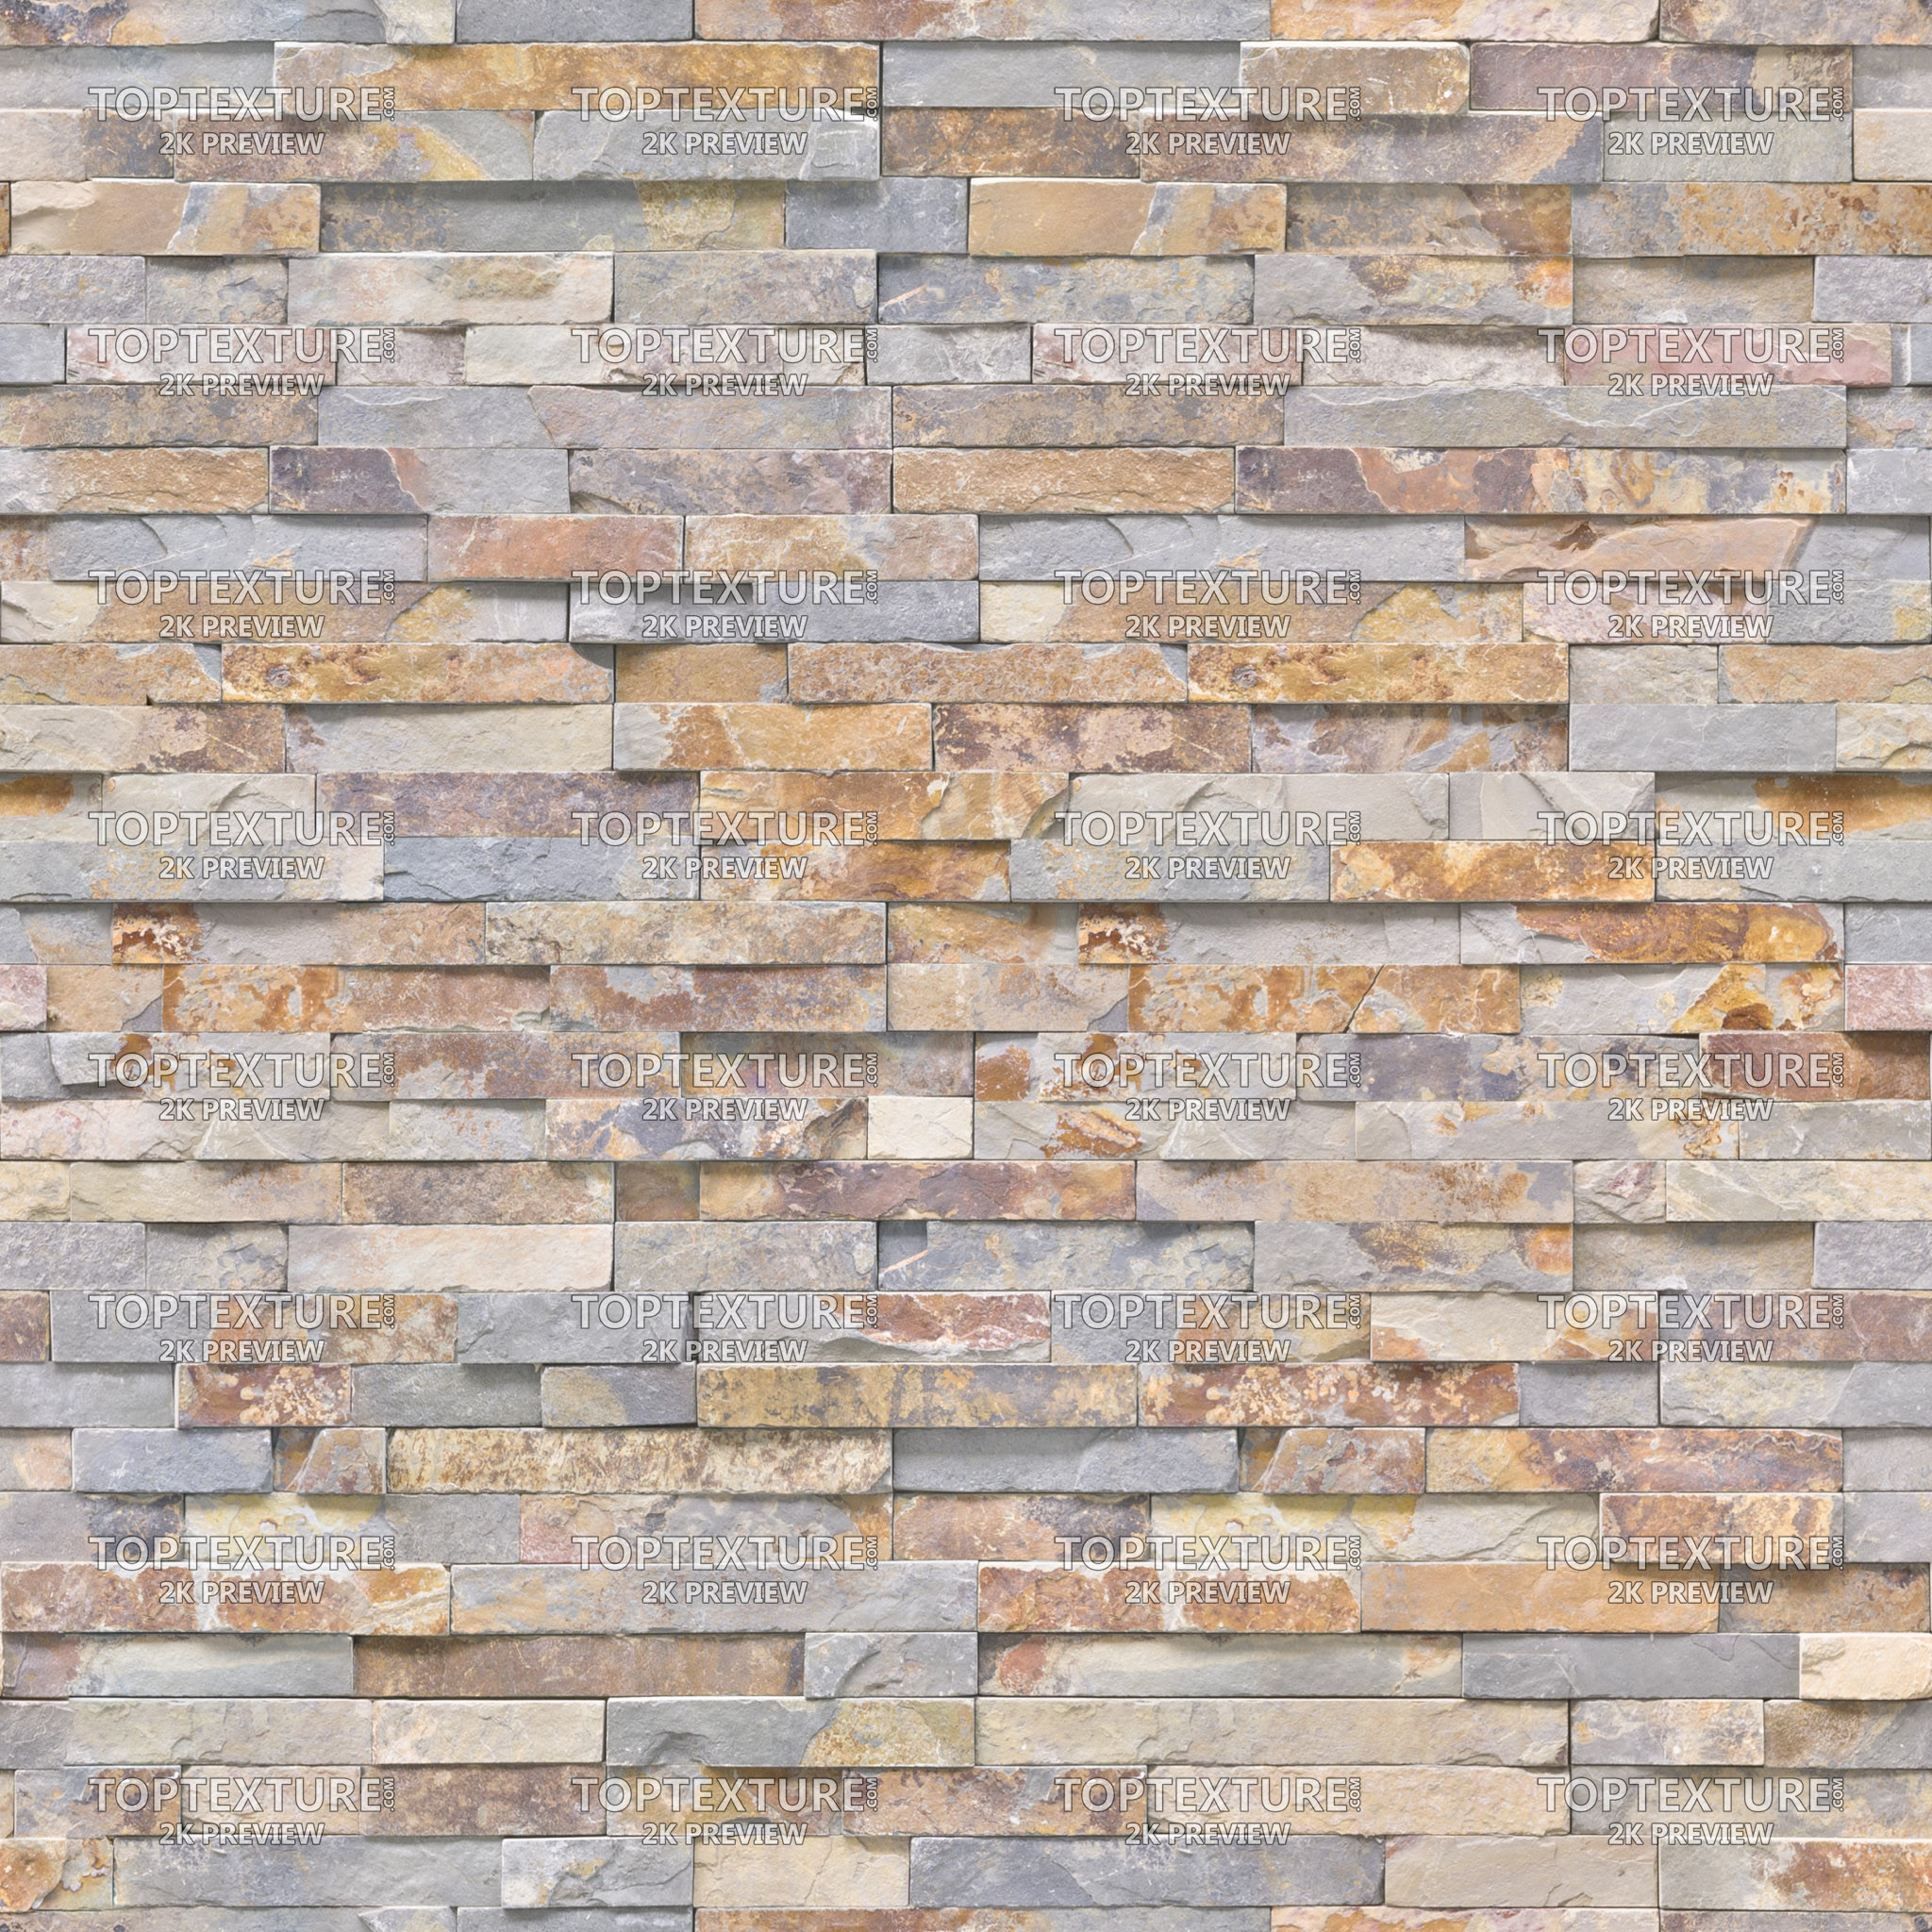 Brown-Grey Wall Stone Cladding - Top Texture